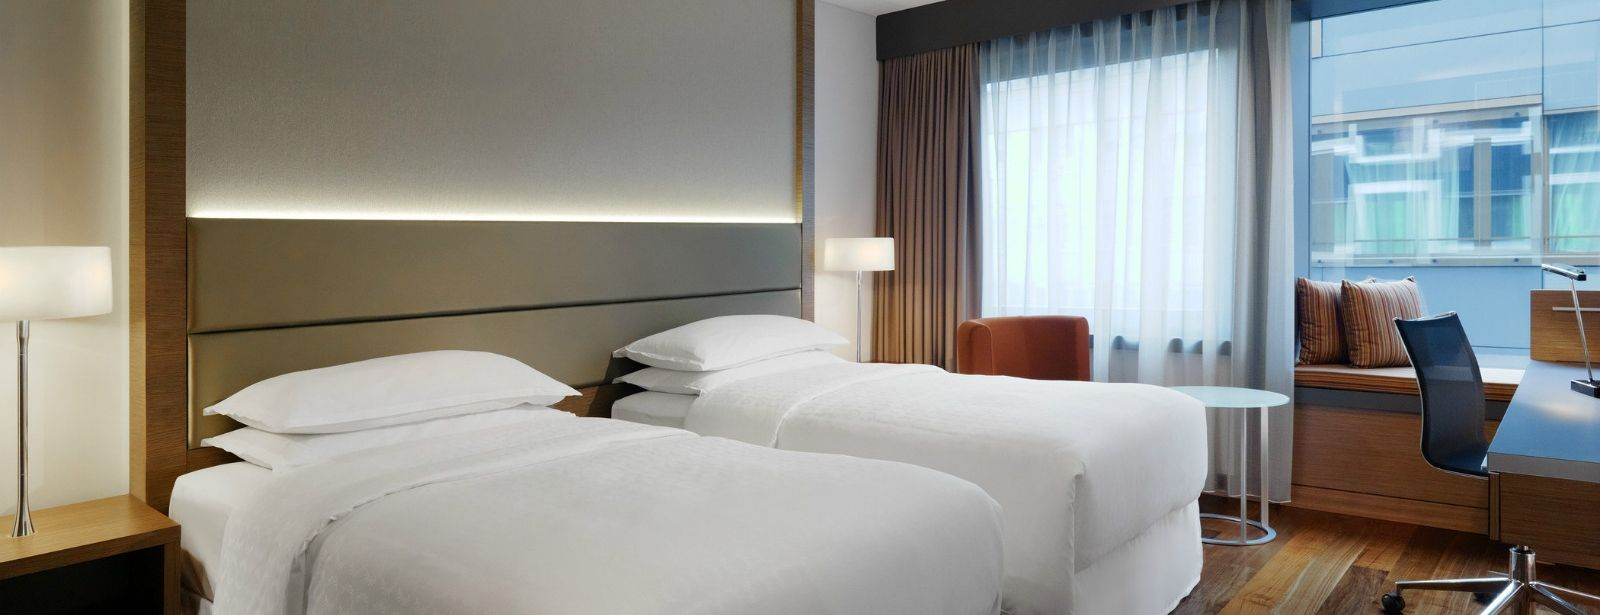 3732-Sheraton-Zurich-Hotel-Executive-Room-1600x900